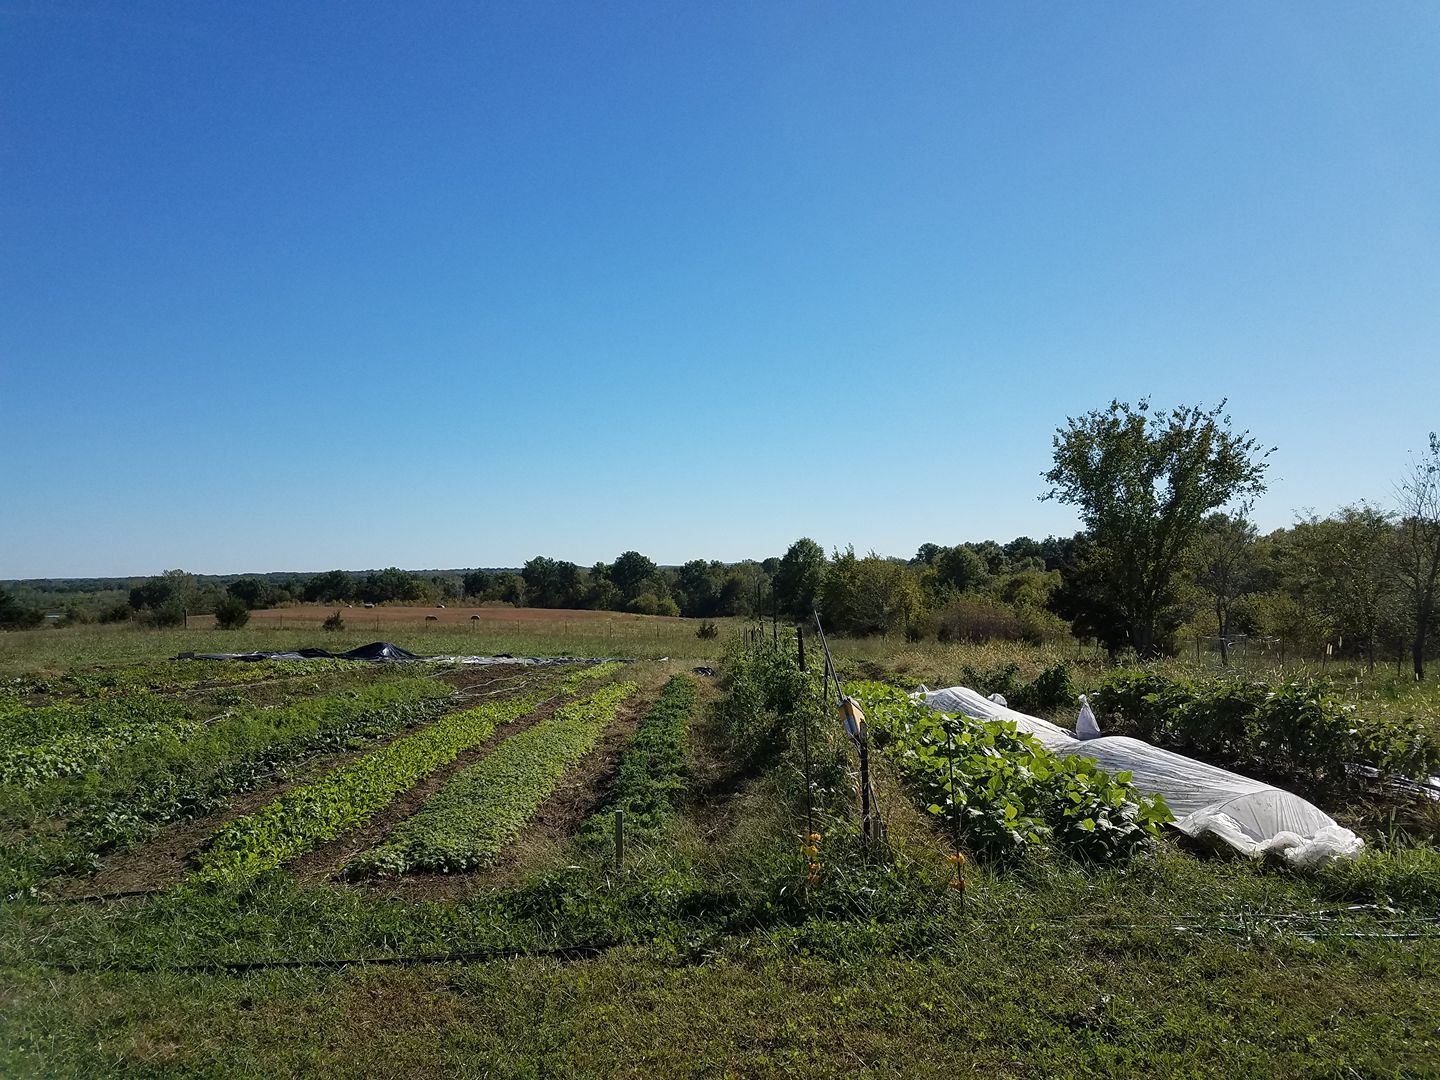 St Clair Farmstead's main market garden plot